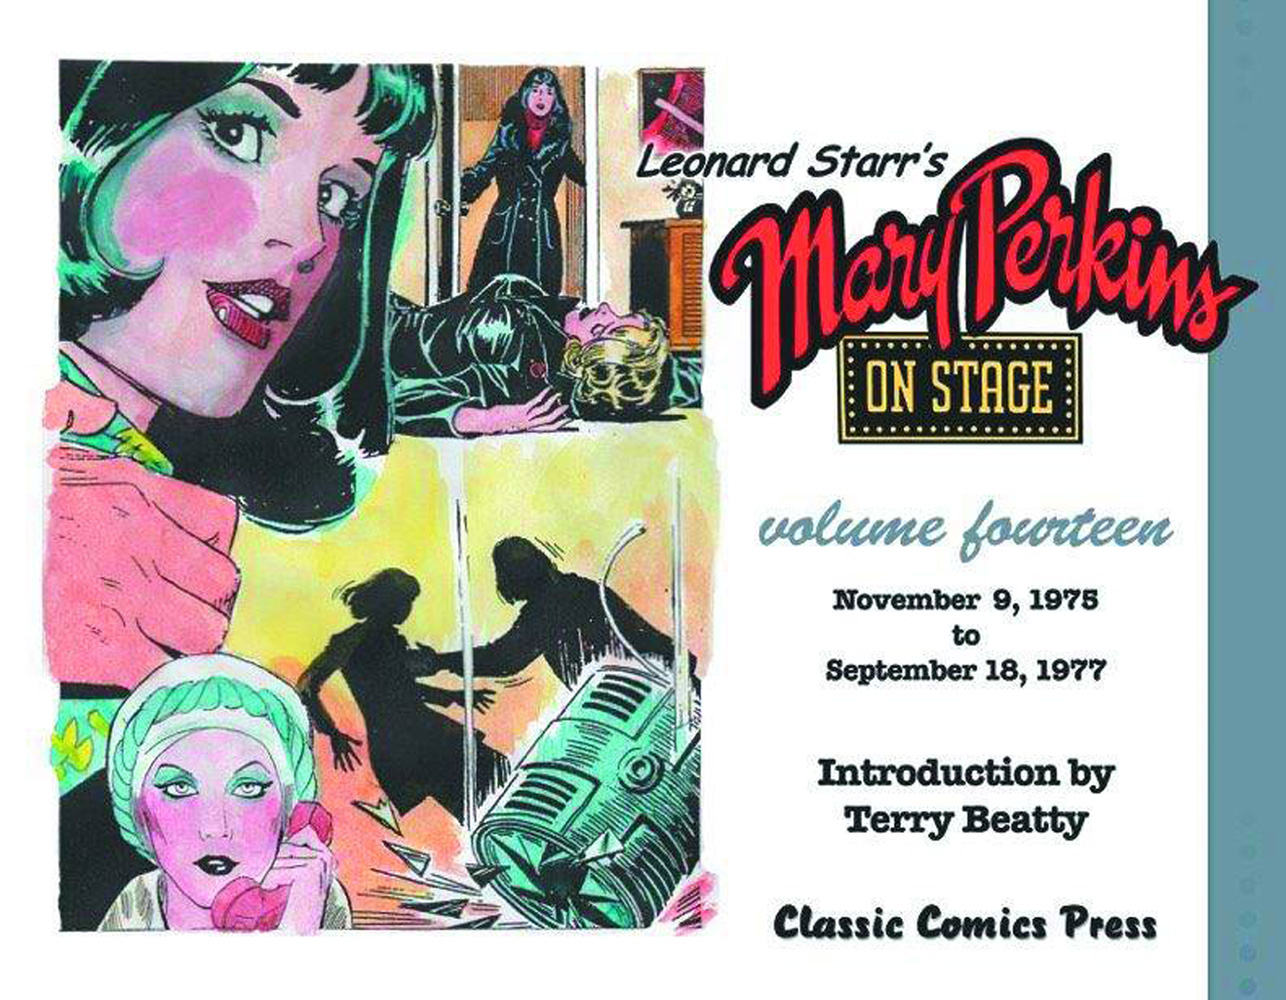 Leonard Starr's Mary Perkins on Stage Volume 14 (1975-1977)